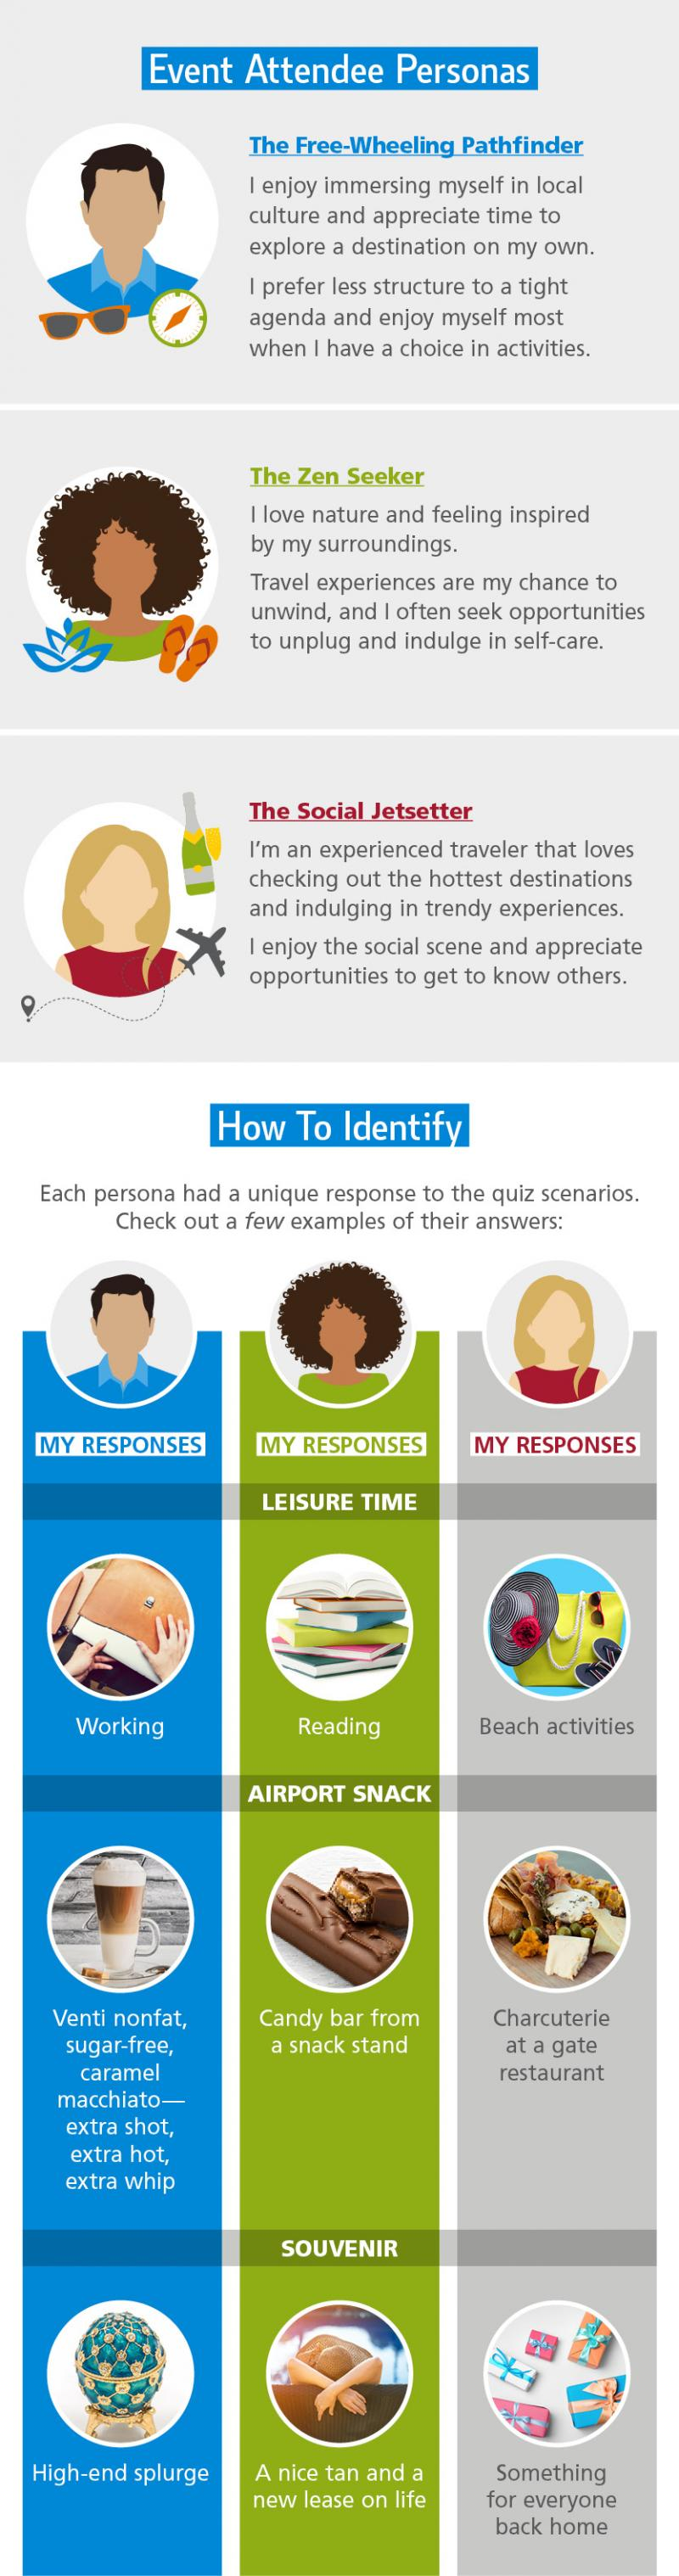 infographic of event personas